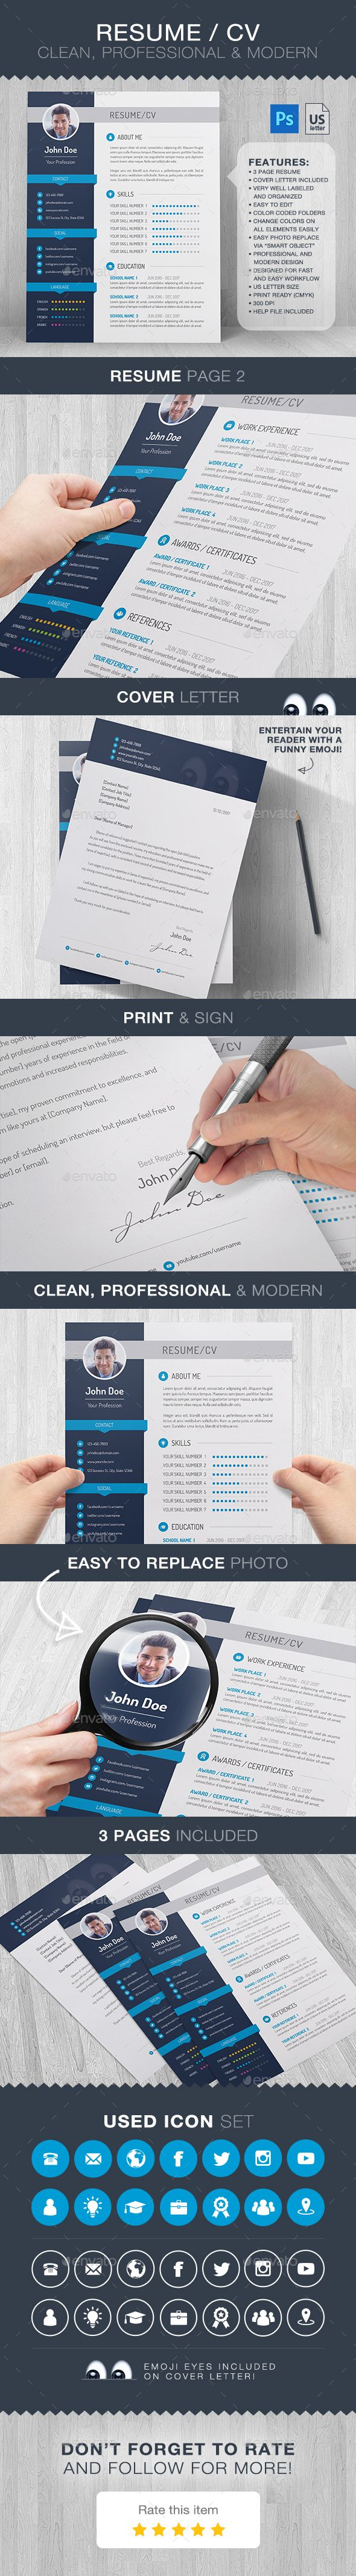 Resume 92 best Effective resume images on